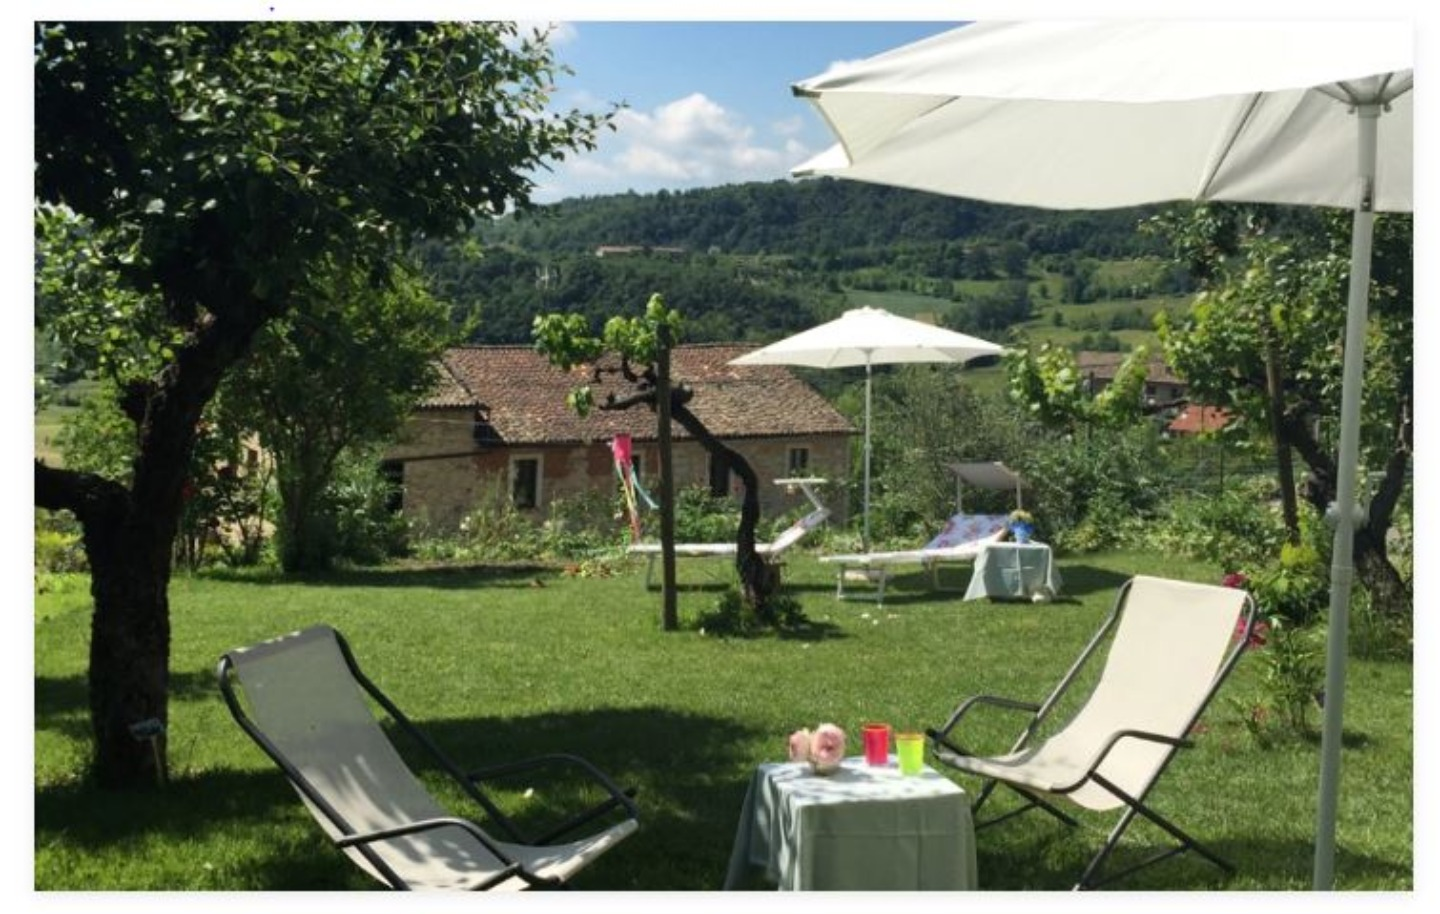 A couple of lawn chairs sitting on top of a picnic table at I Peschi Bed  and Breakfast.